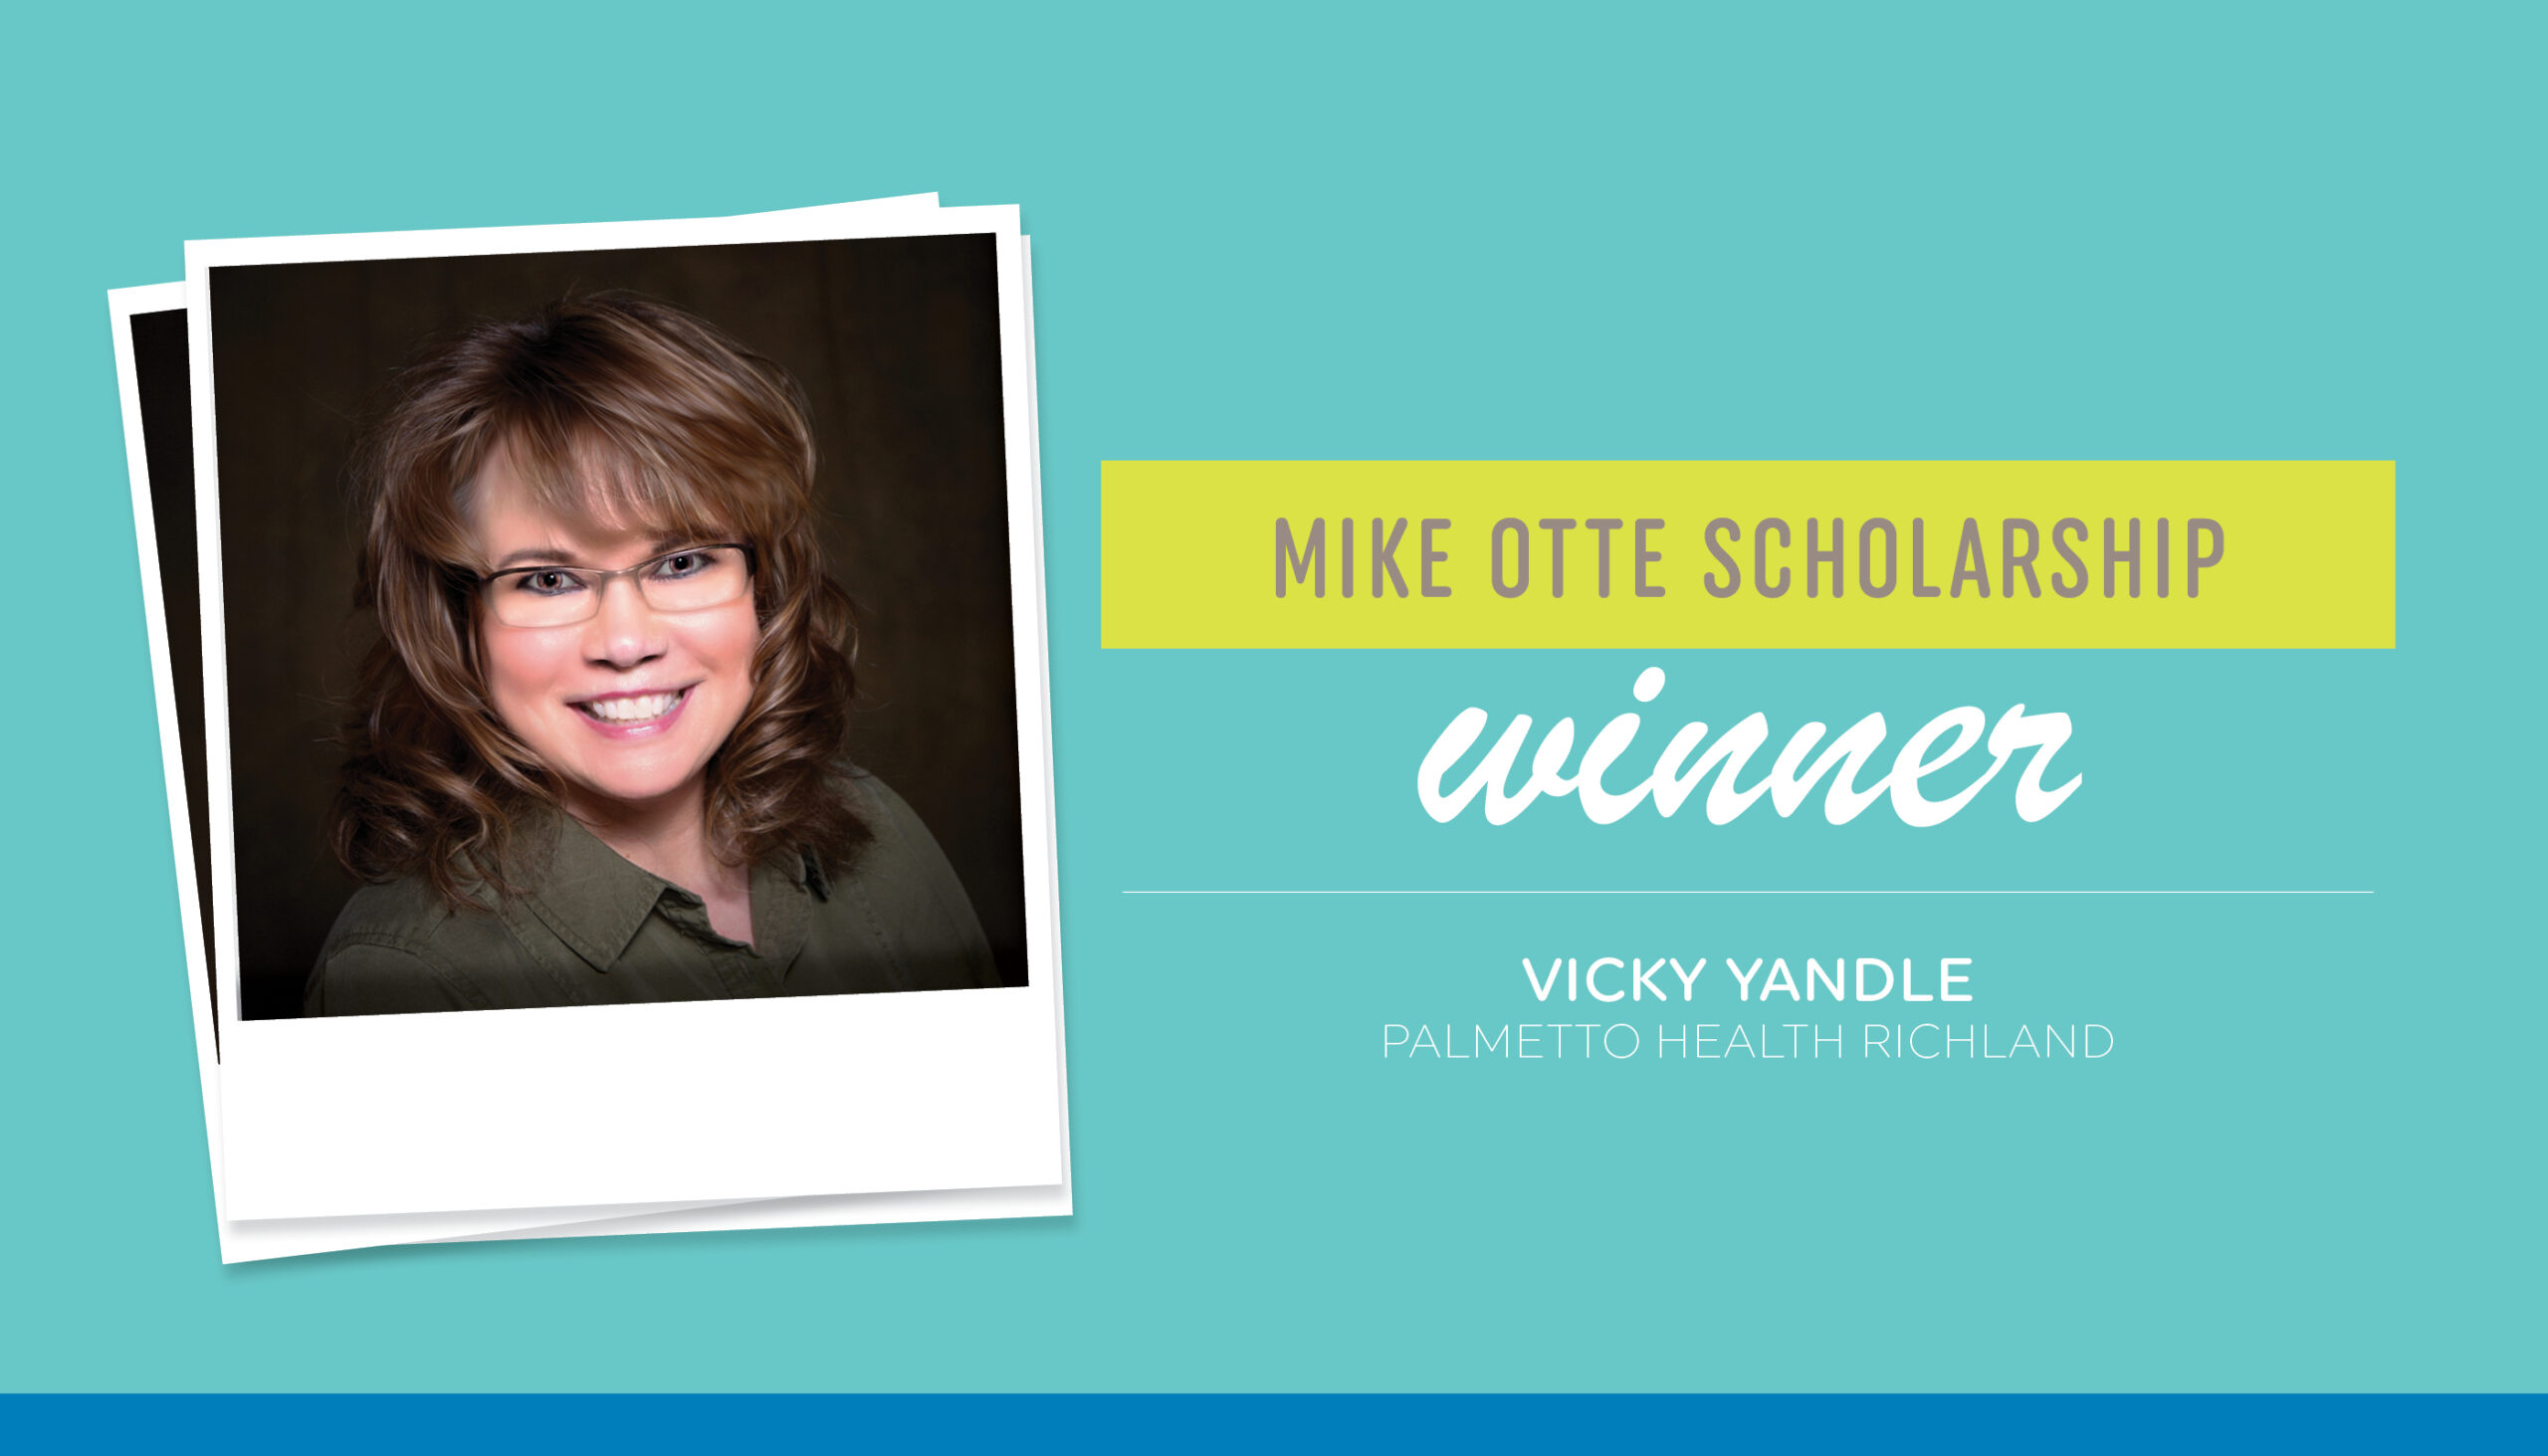 Meet Mike Otte Scholarship Recipient | Vicky Yandle